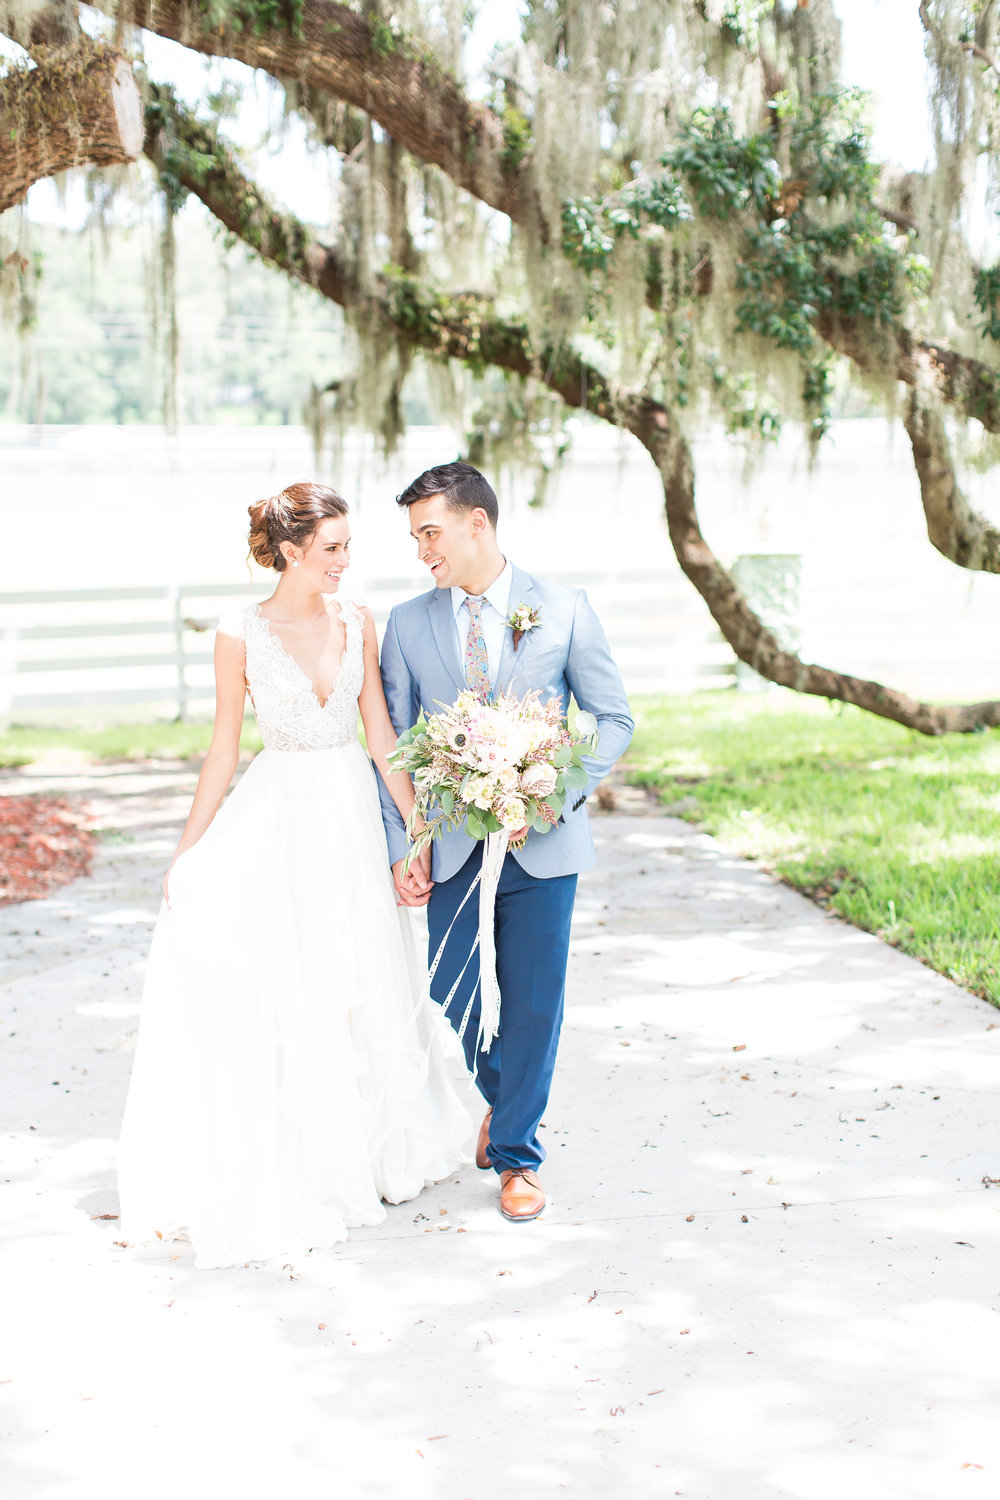 PSJ Photography by PJ Saffran - Central Florida wedding photographer - DeLand - Winter Park - Tampa - St Augustine - Palm Beach